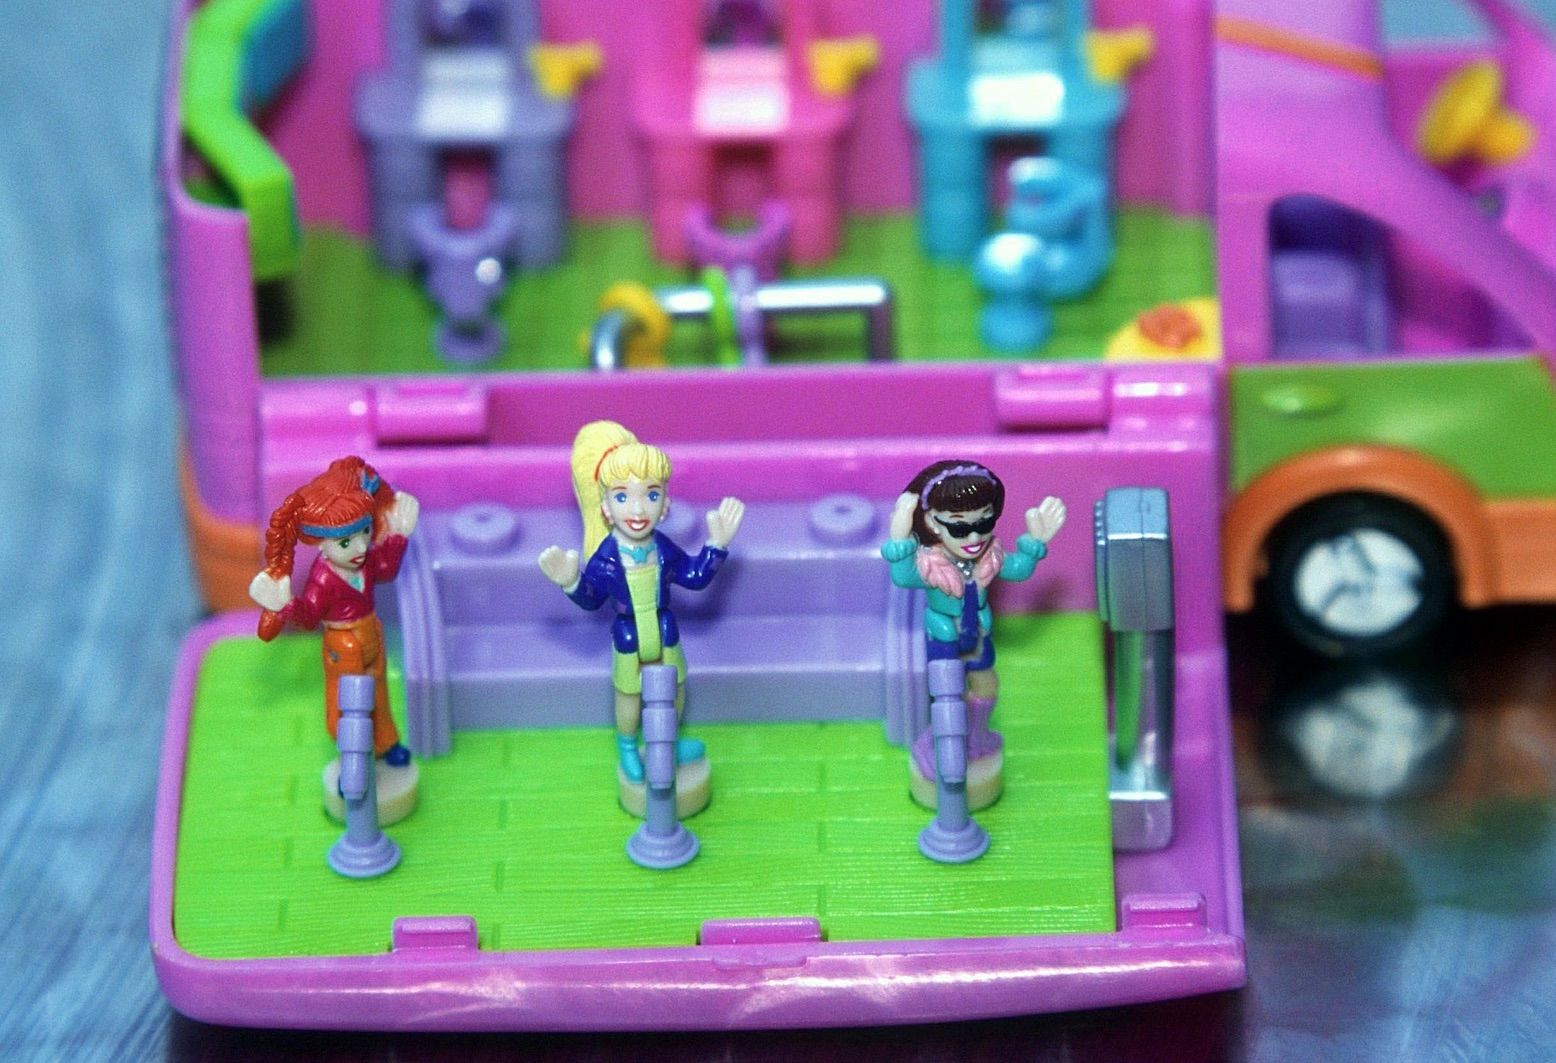 Original Polly Pocket Dolls Are Now Worth a LOT of Cash